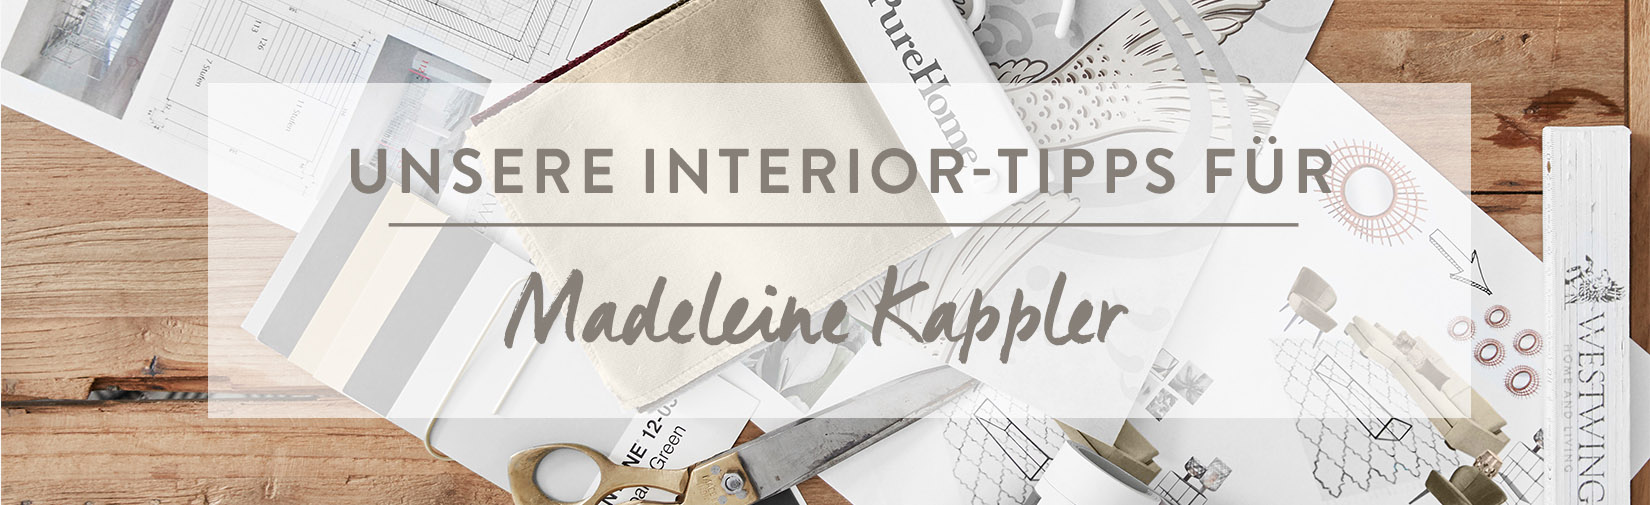 LP_Madeleine_Kappler_Desktop